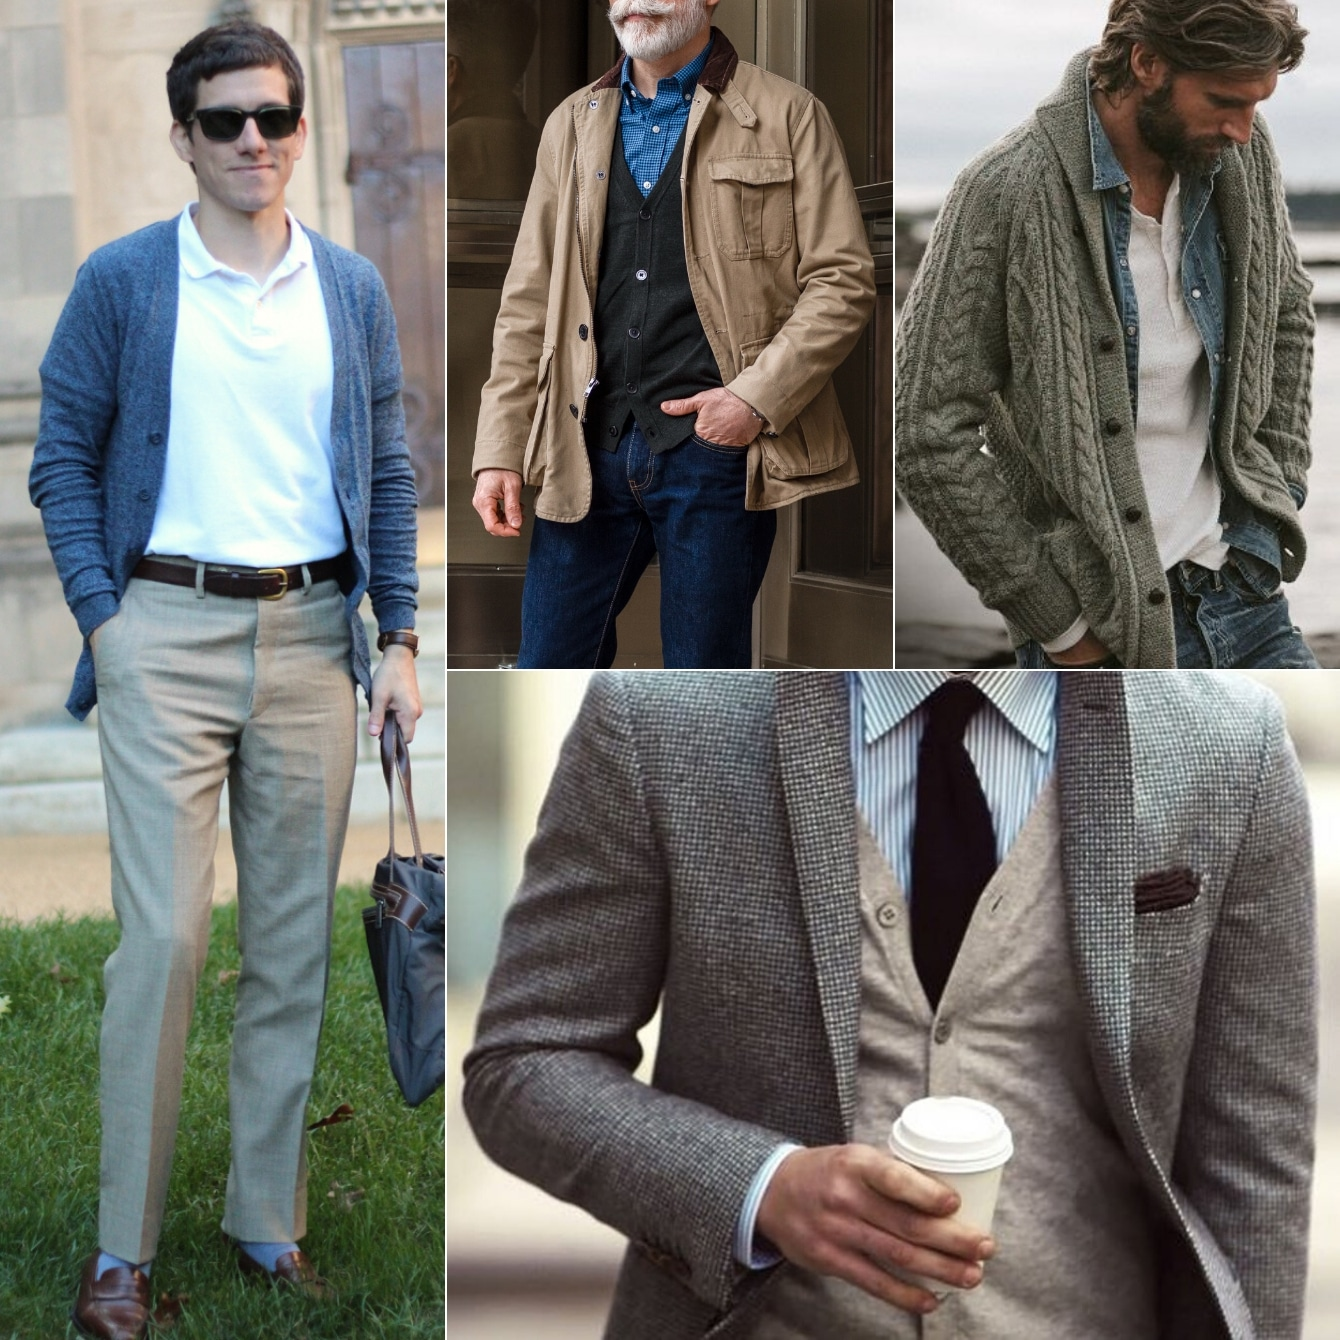 How to Wear a Cardigan: 11 Outfit Ideas for Guys The